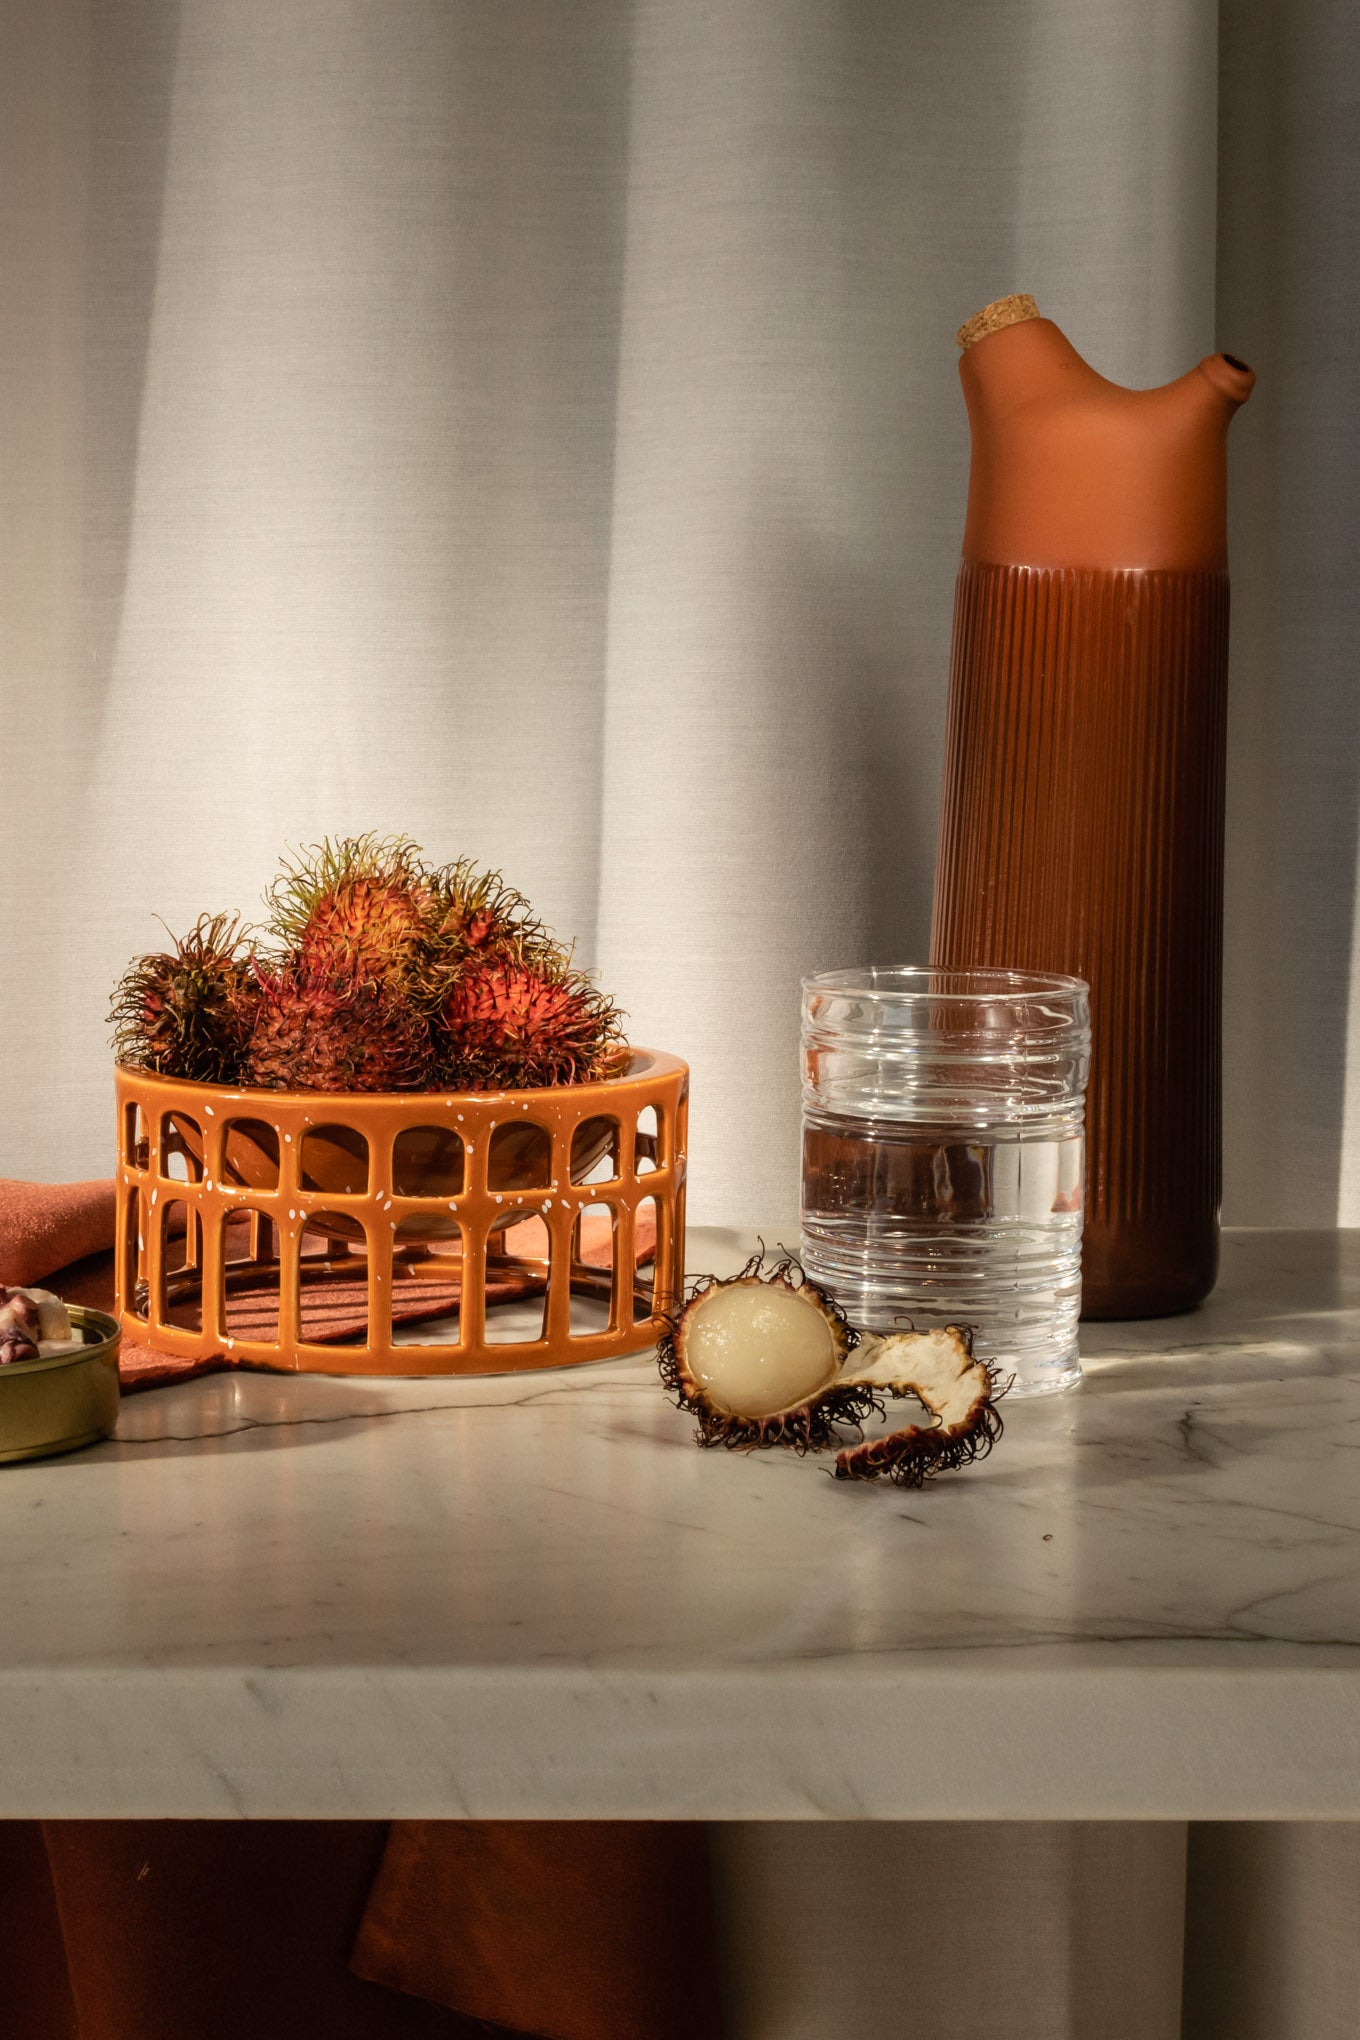 Terracotta Junto Carafe with fruits and water on the table